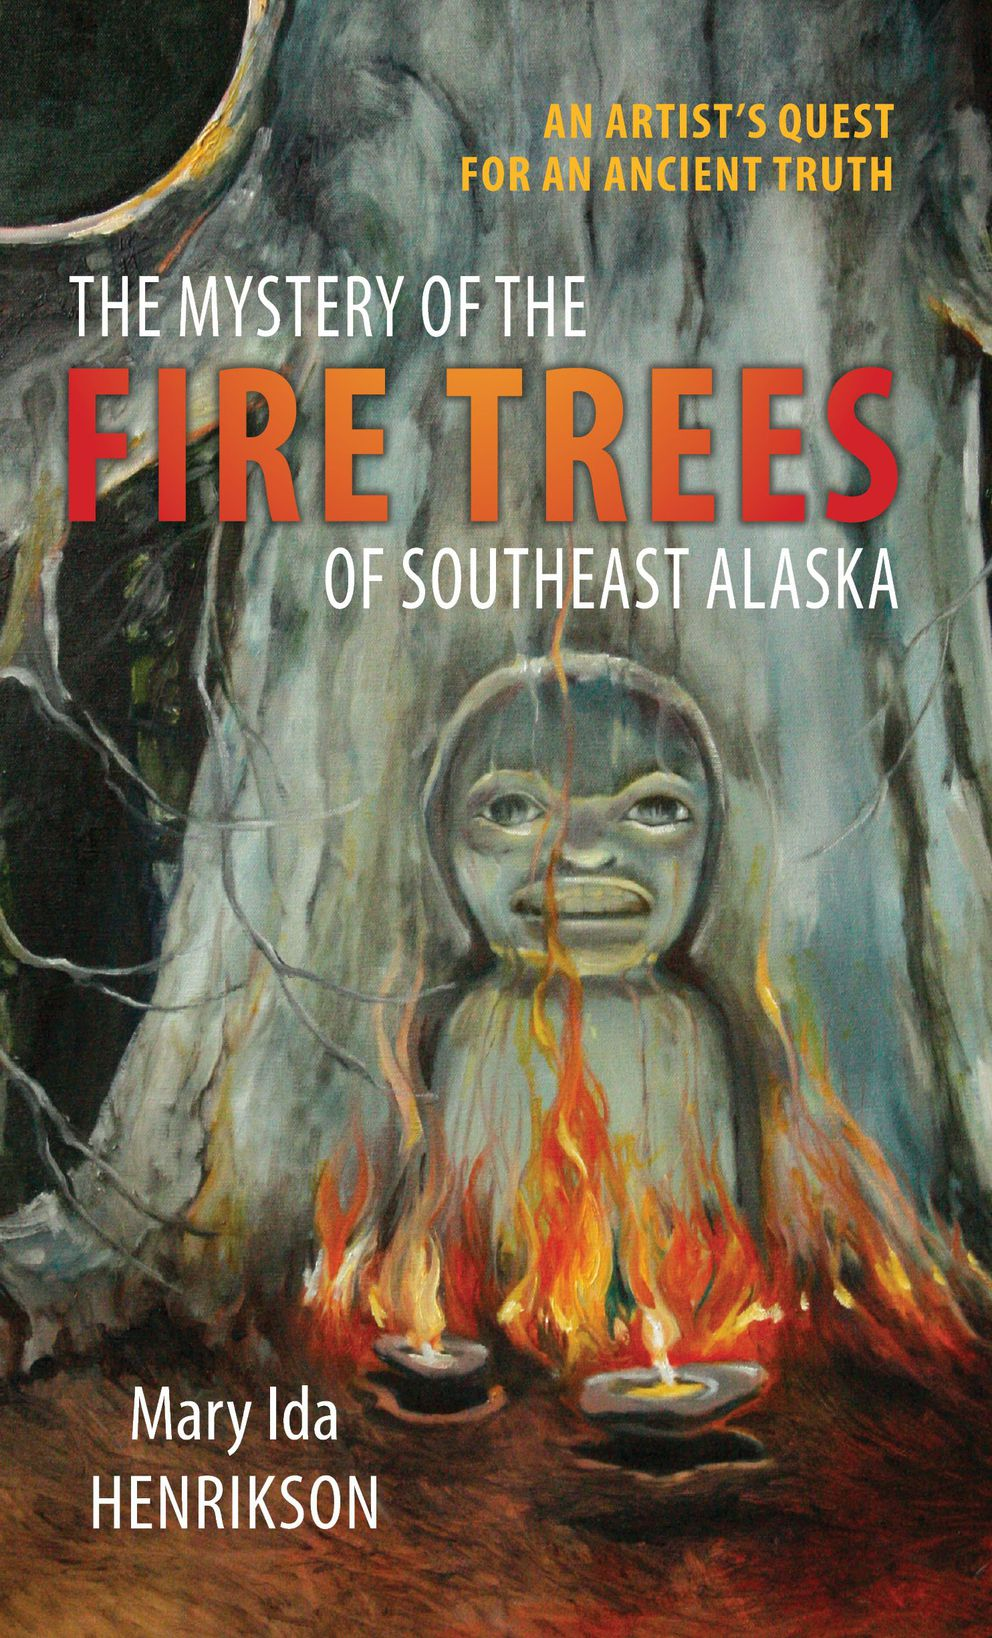 """The Mystery of the Fire Trees of Southeast Alaska,"" by Mary Ida Henrikson"